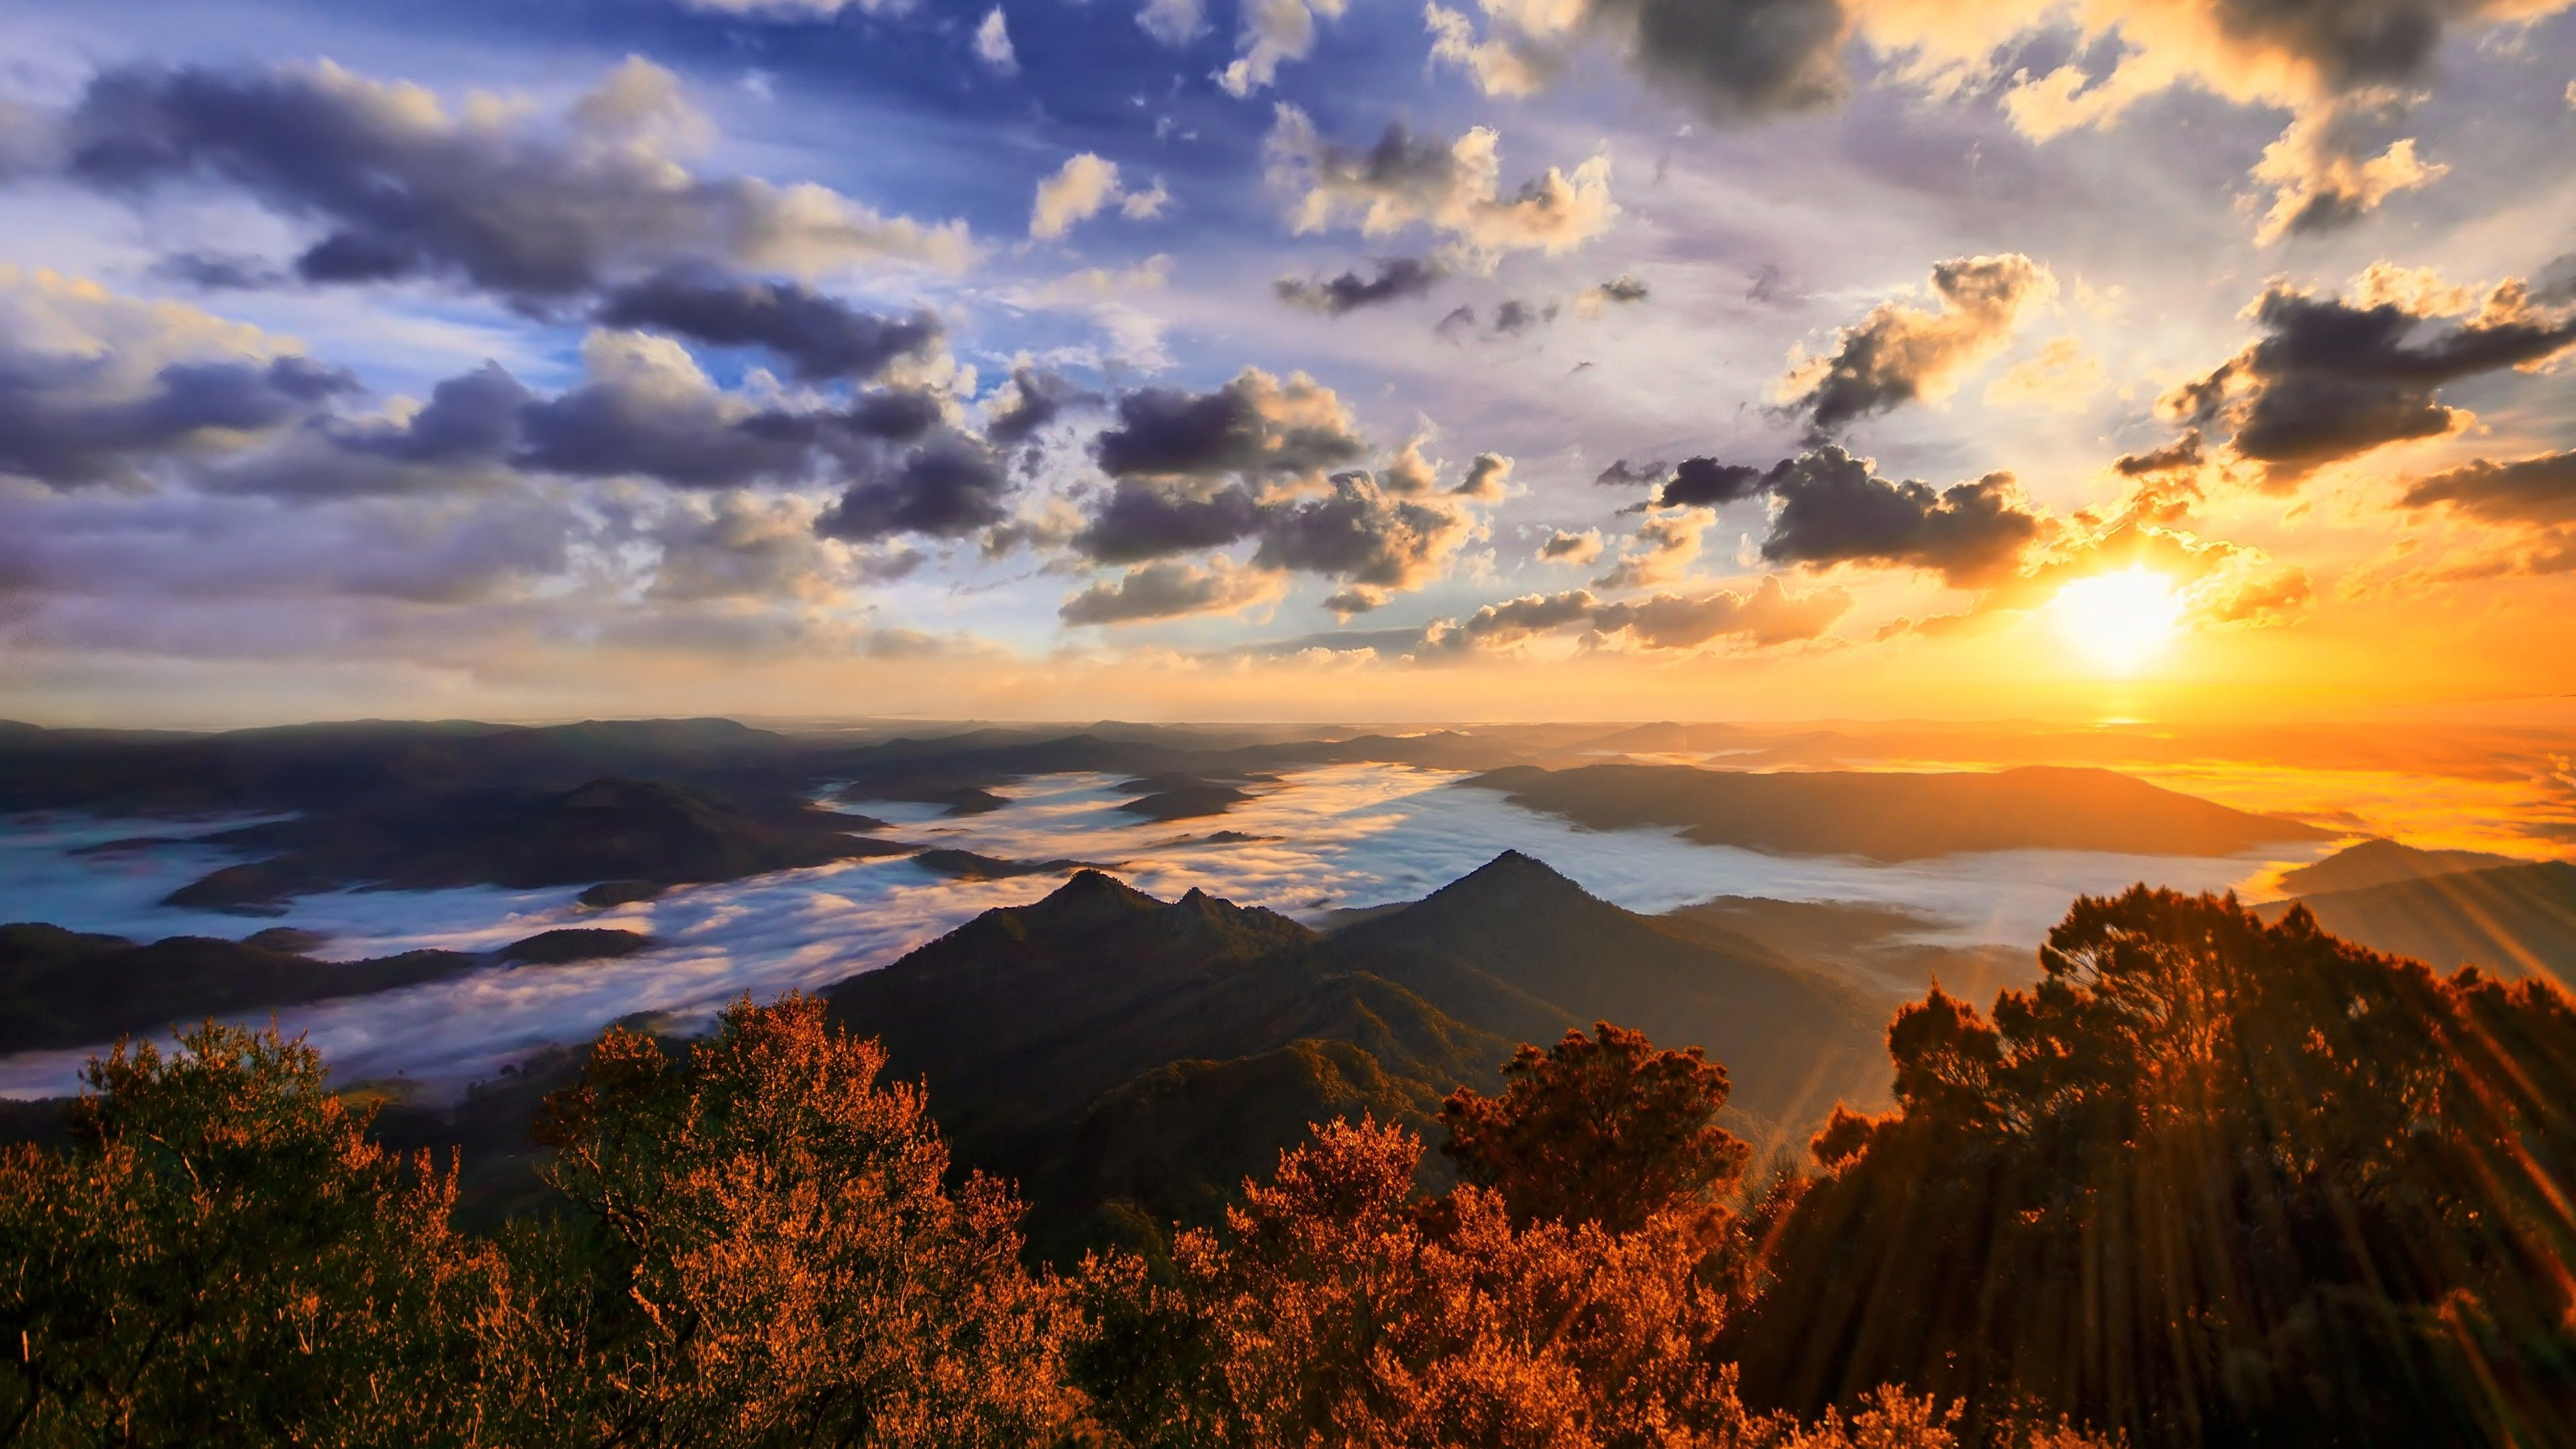 Nature Mountain Sunset Landscape Trees Forest Wallpaper And Background Mountain Sunset Landscapes Sunset Landscape Landscape Wallpaper Wallpaper nature sunset florest tree sun